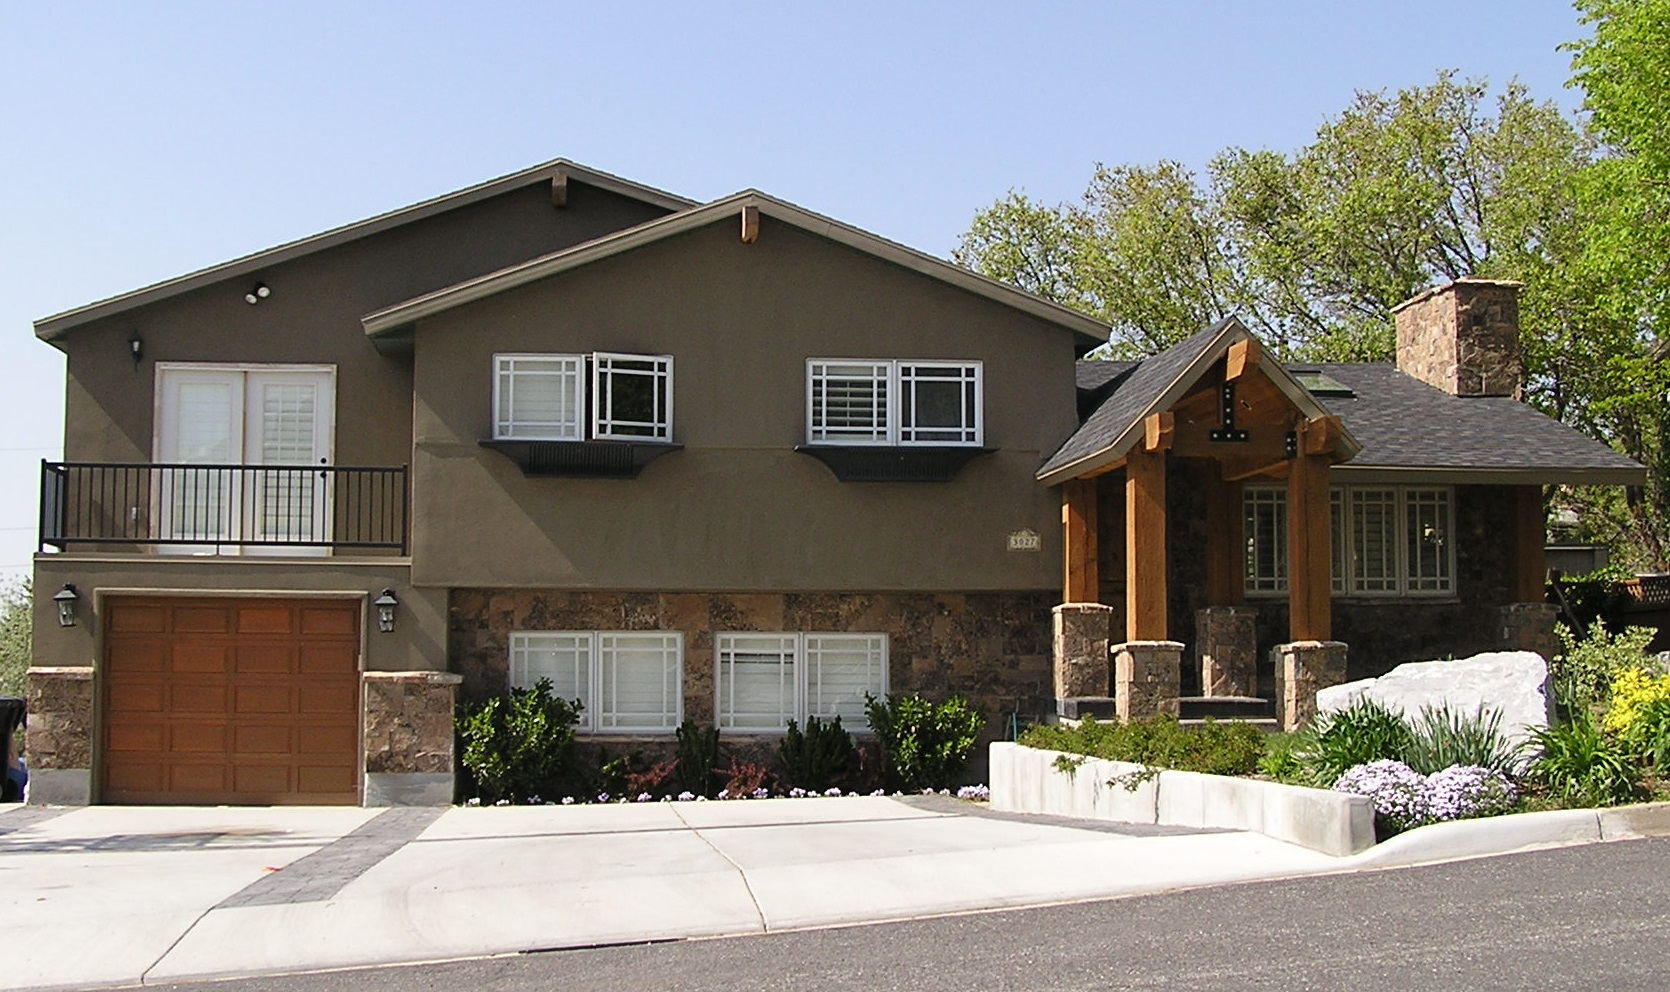 Home Additions & Remodeling Contractor in Salt Lake and Summit County, Utah